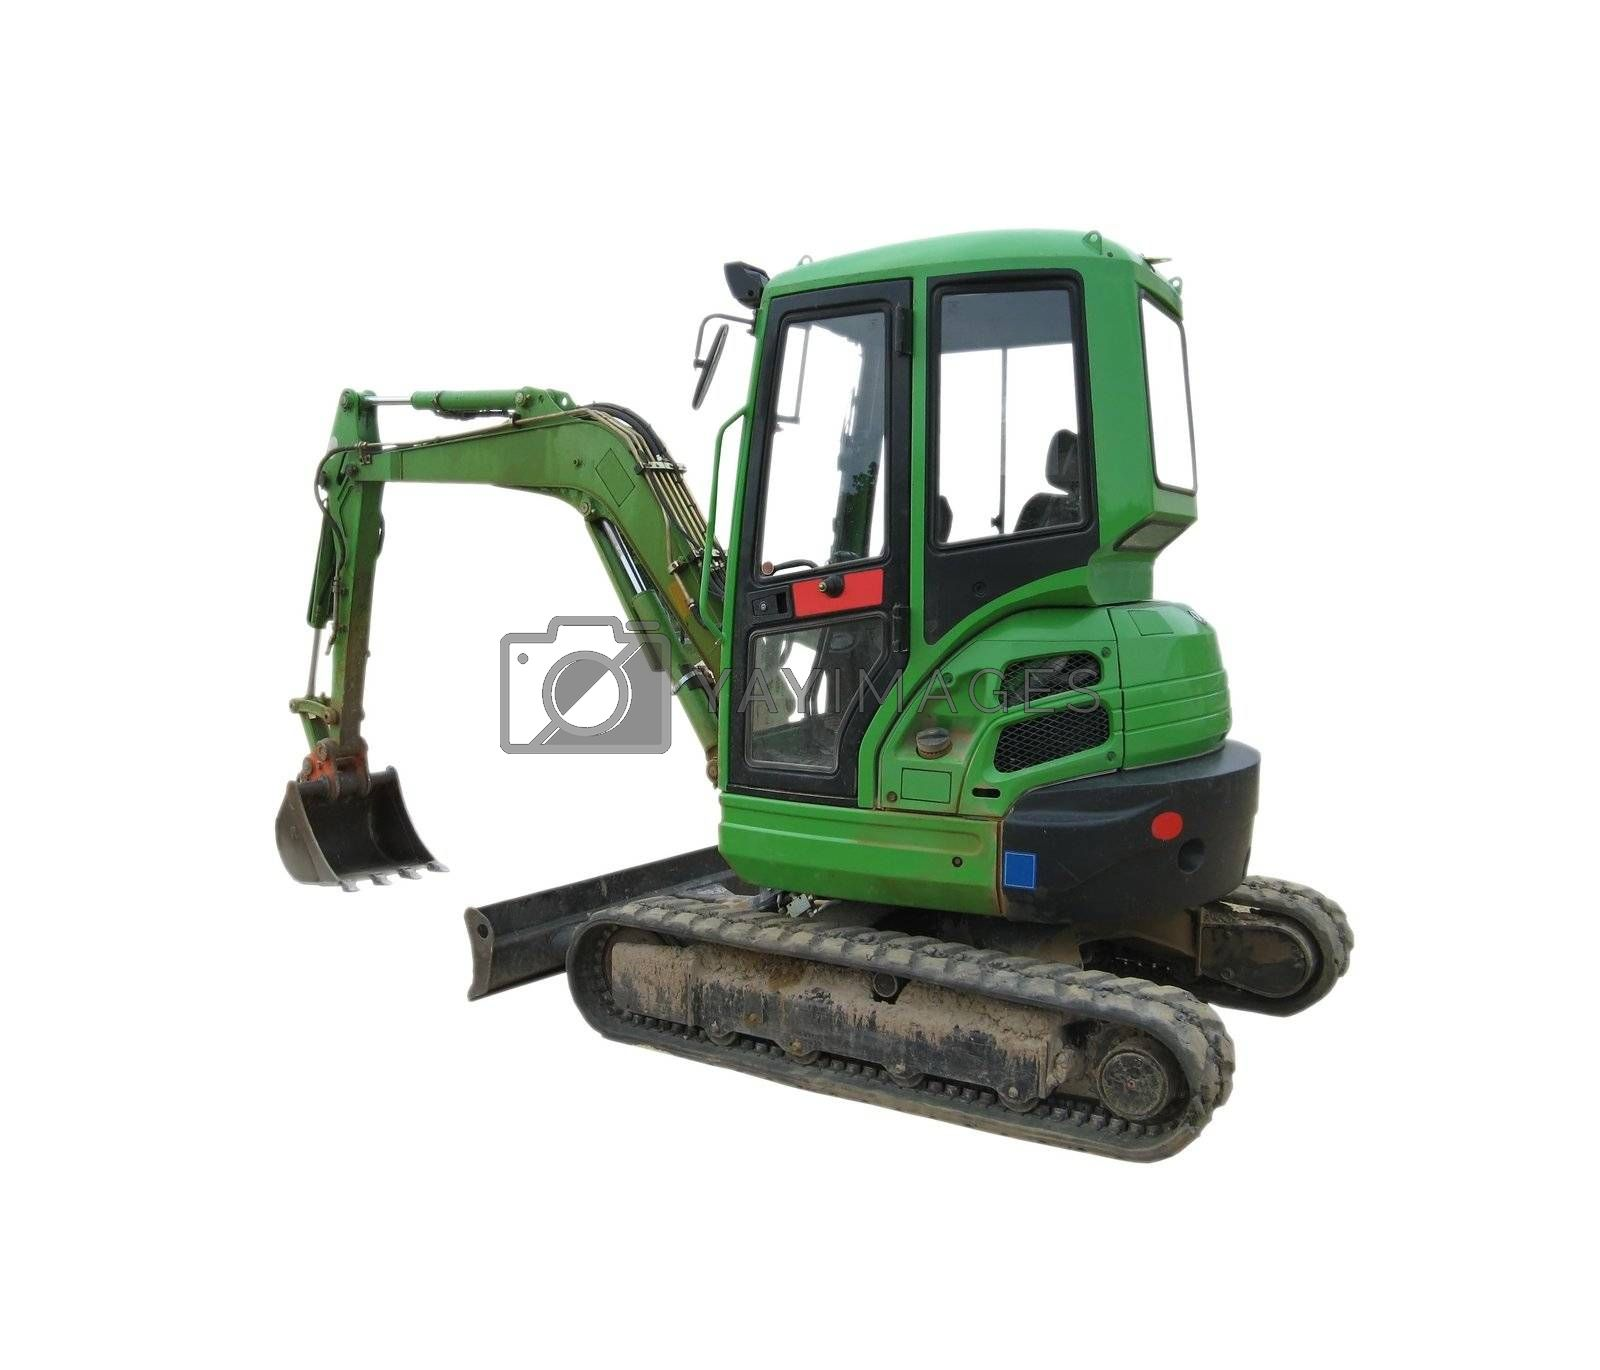 image showing a green excavator with a white background